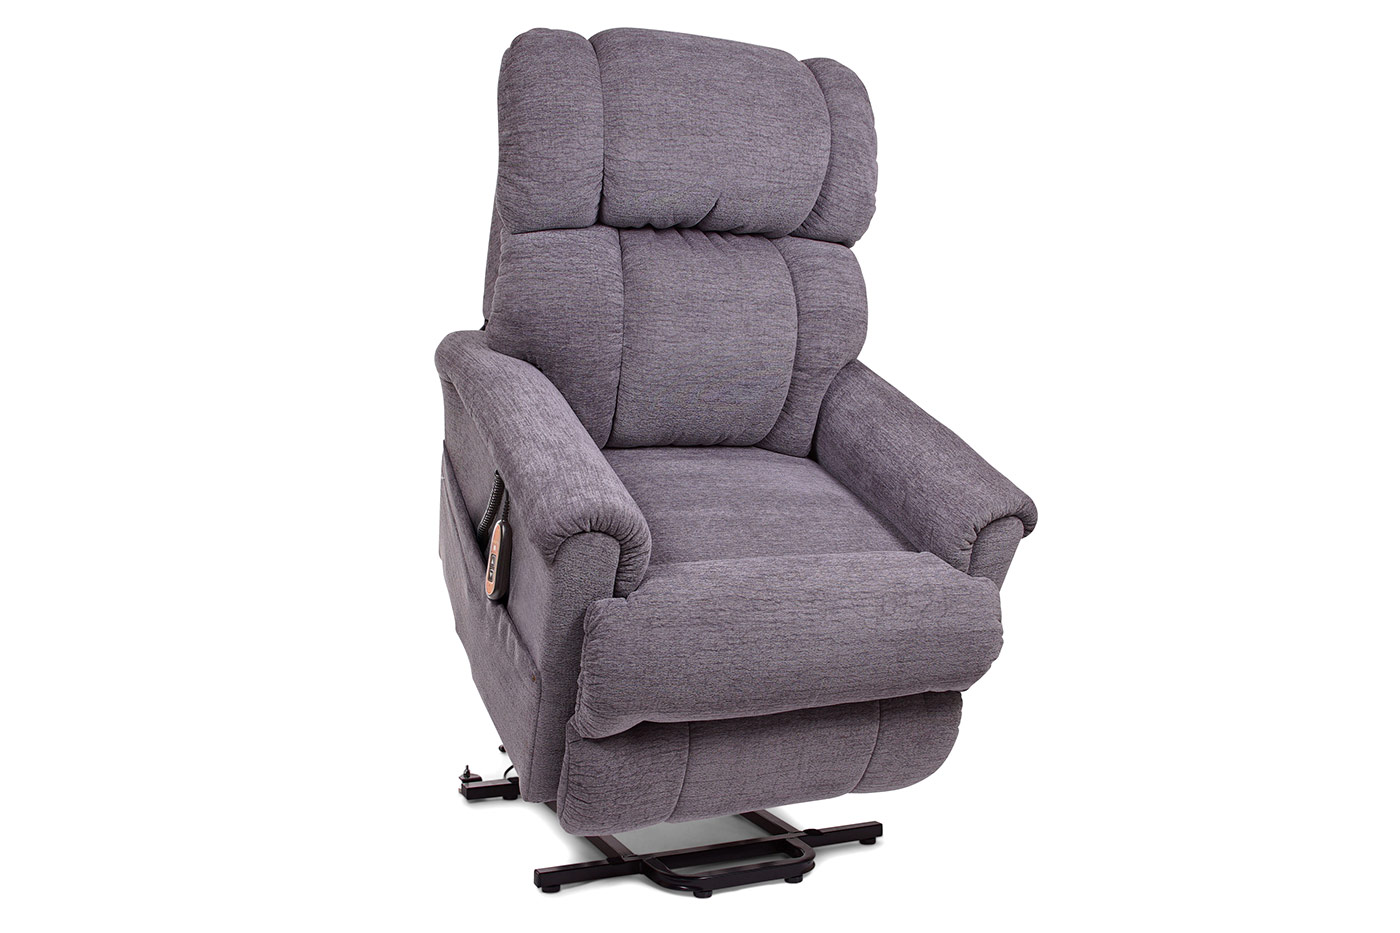 Space Saver Lift Chair Medium User Height 5 4 Quot 5 10